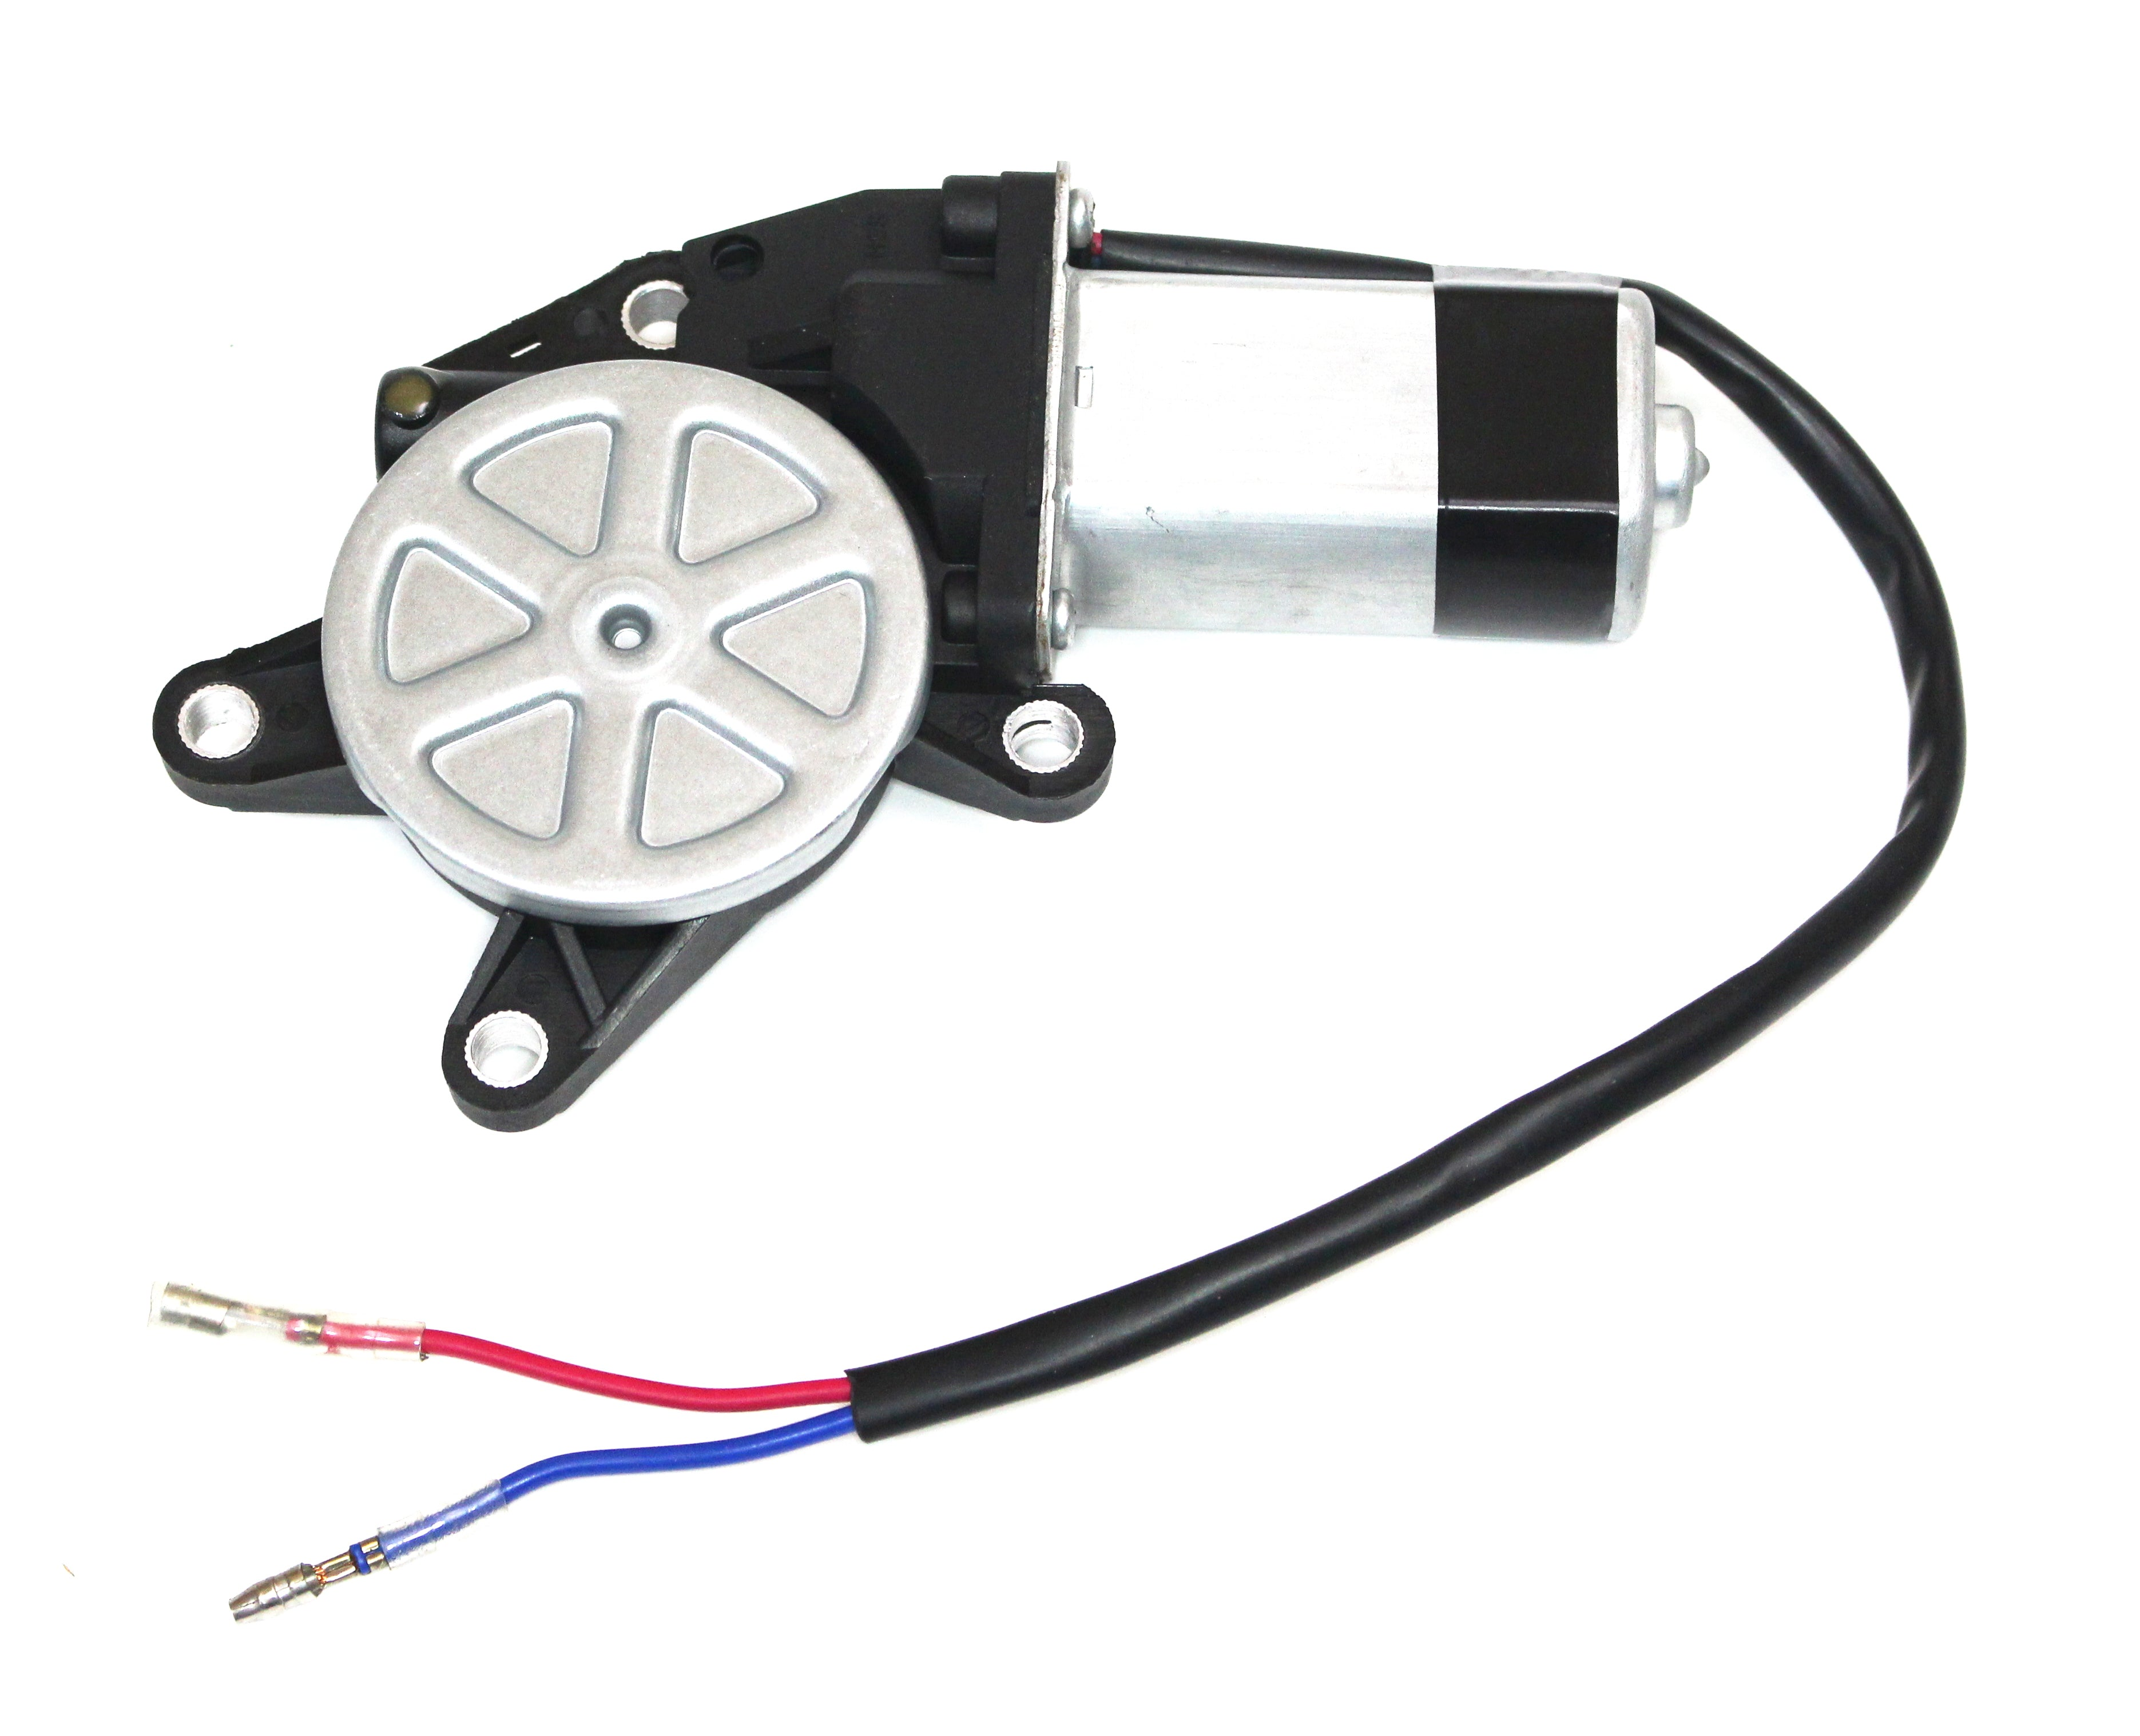 SEADOO Trim motor VTS GSI SPX SP RX GSX XP RXP WAKE NEW 278000616